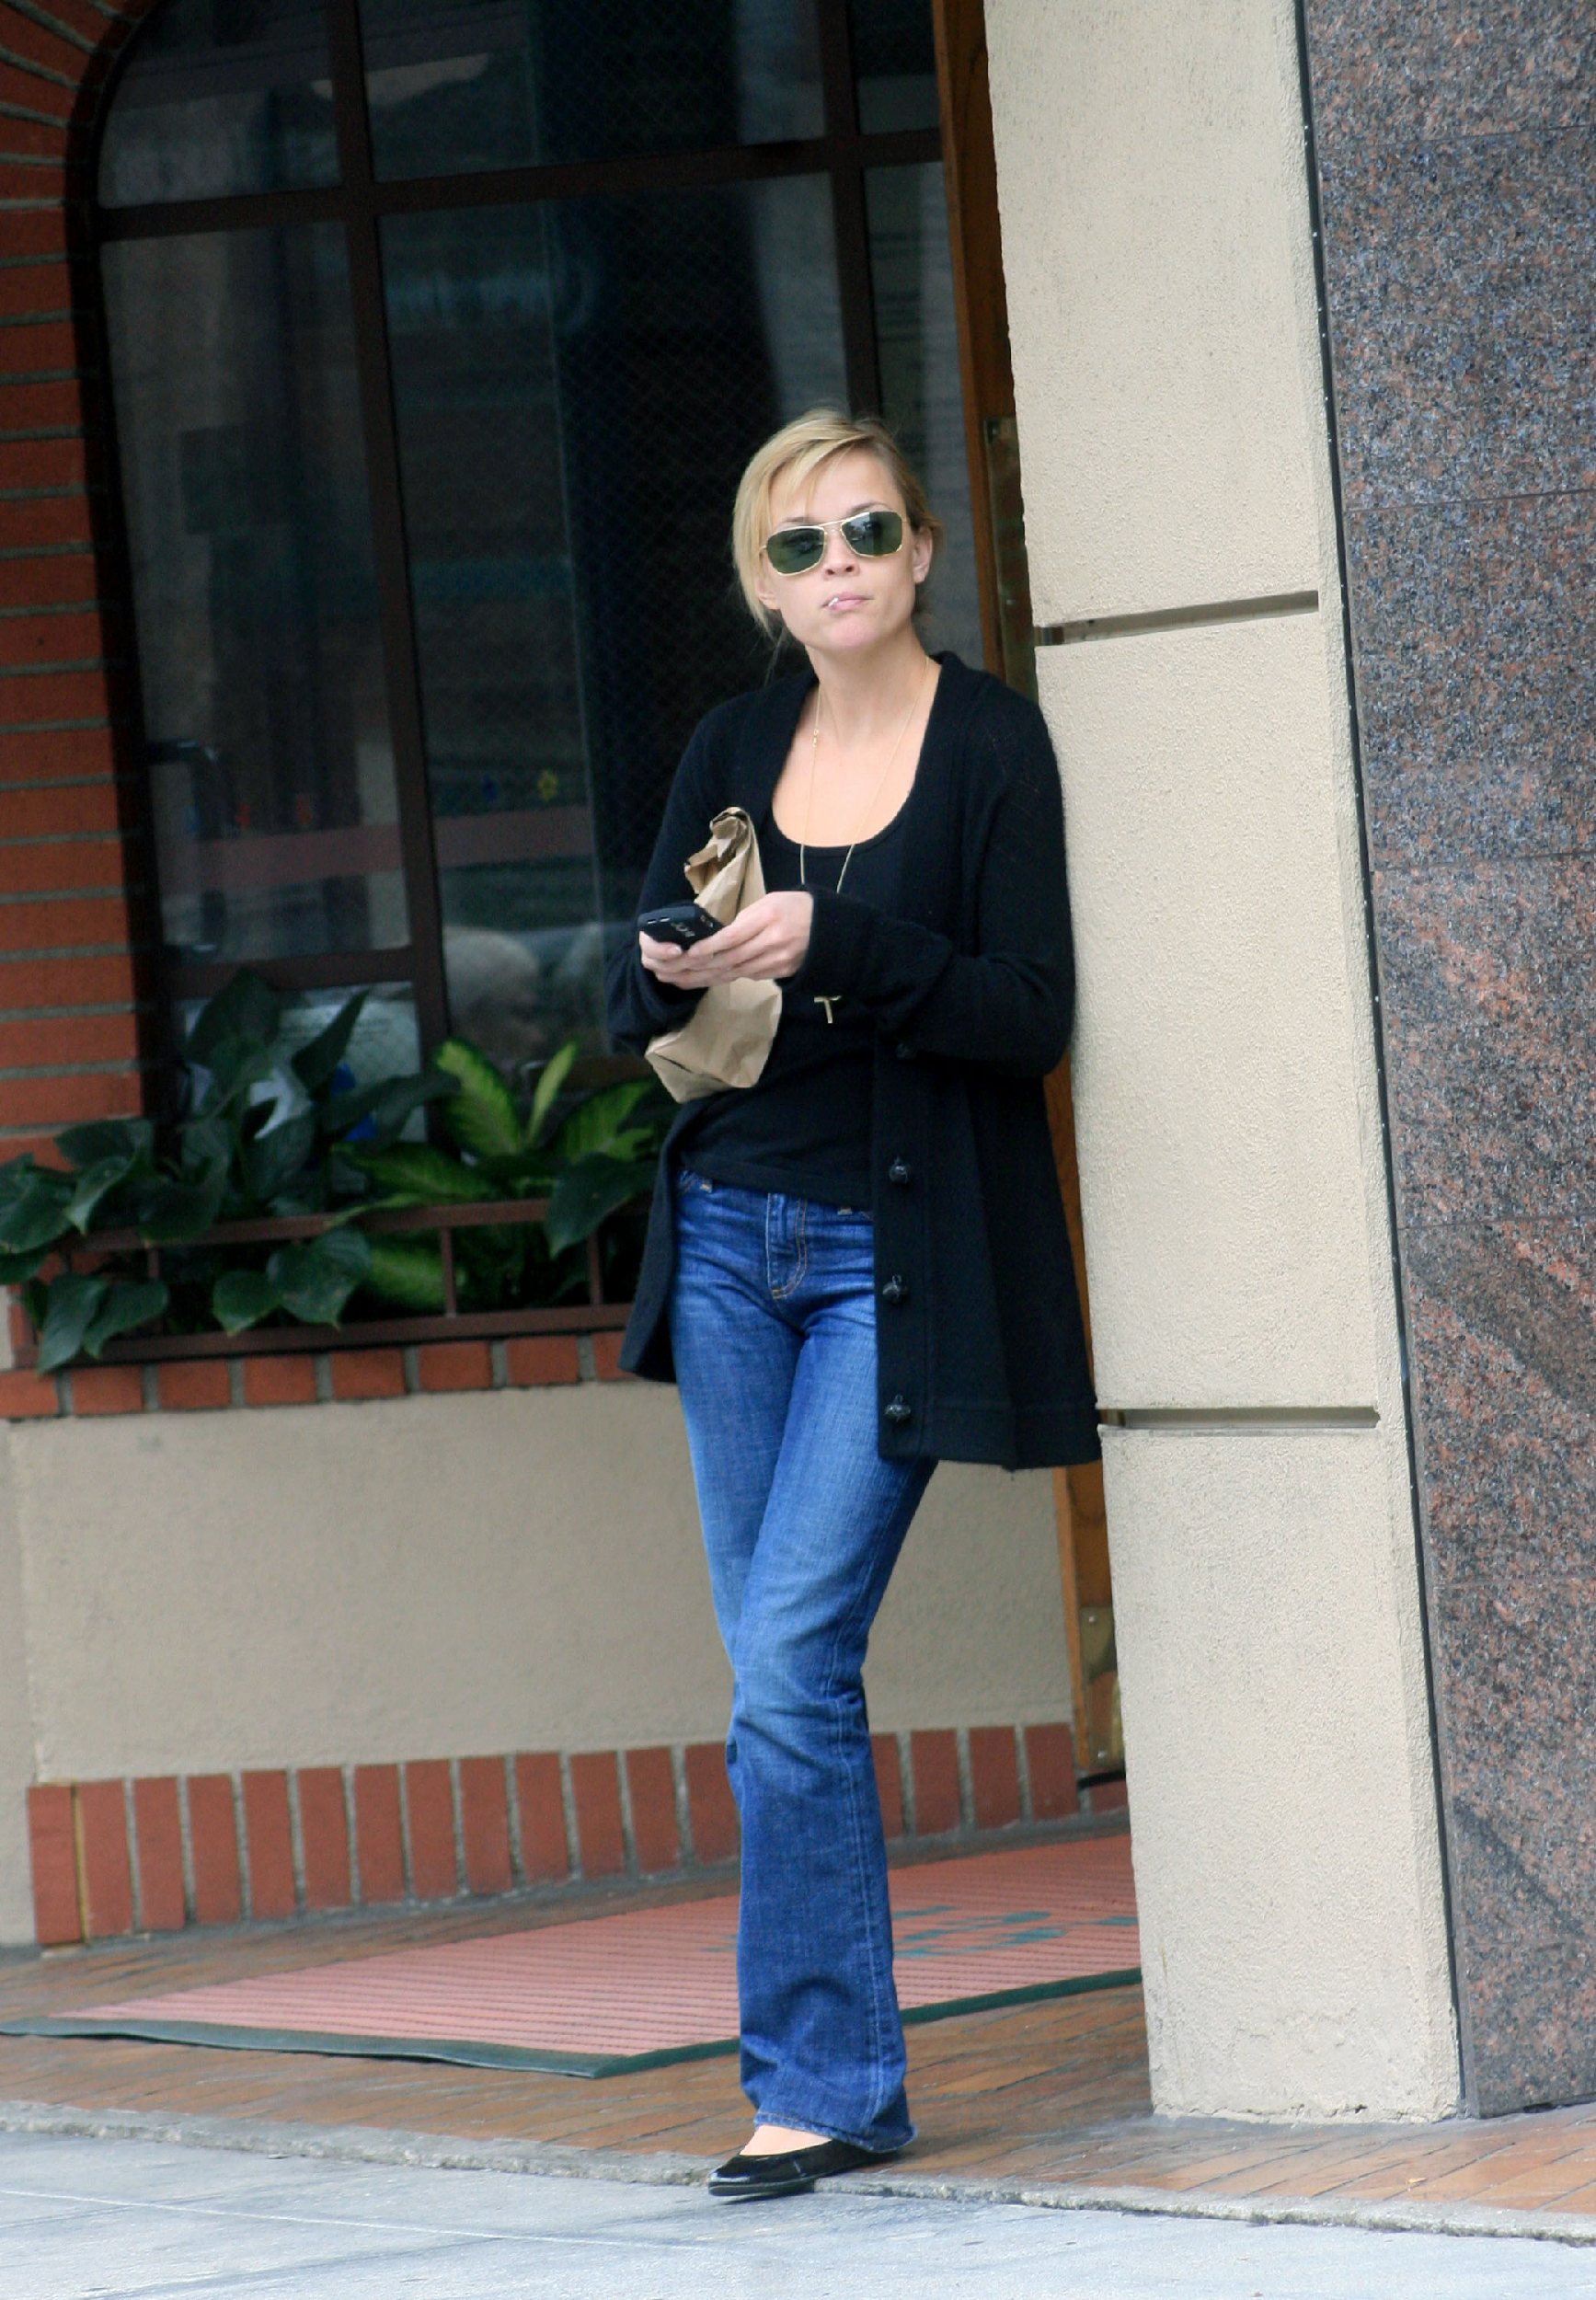 59188_celeb-city.eu_Reese_Witherspoon_leaves_a_medical_building_03_122_1175lo.jpg